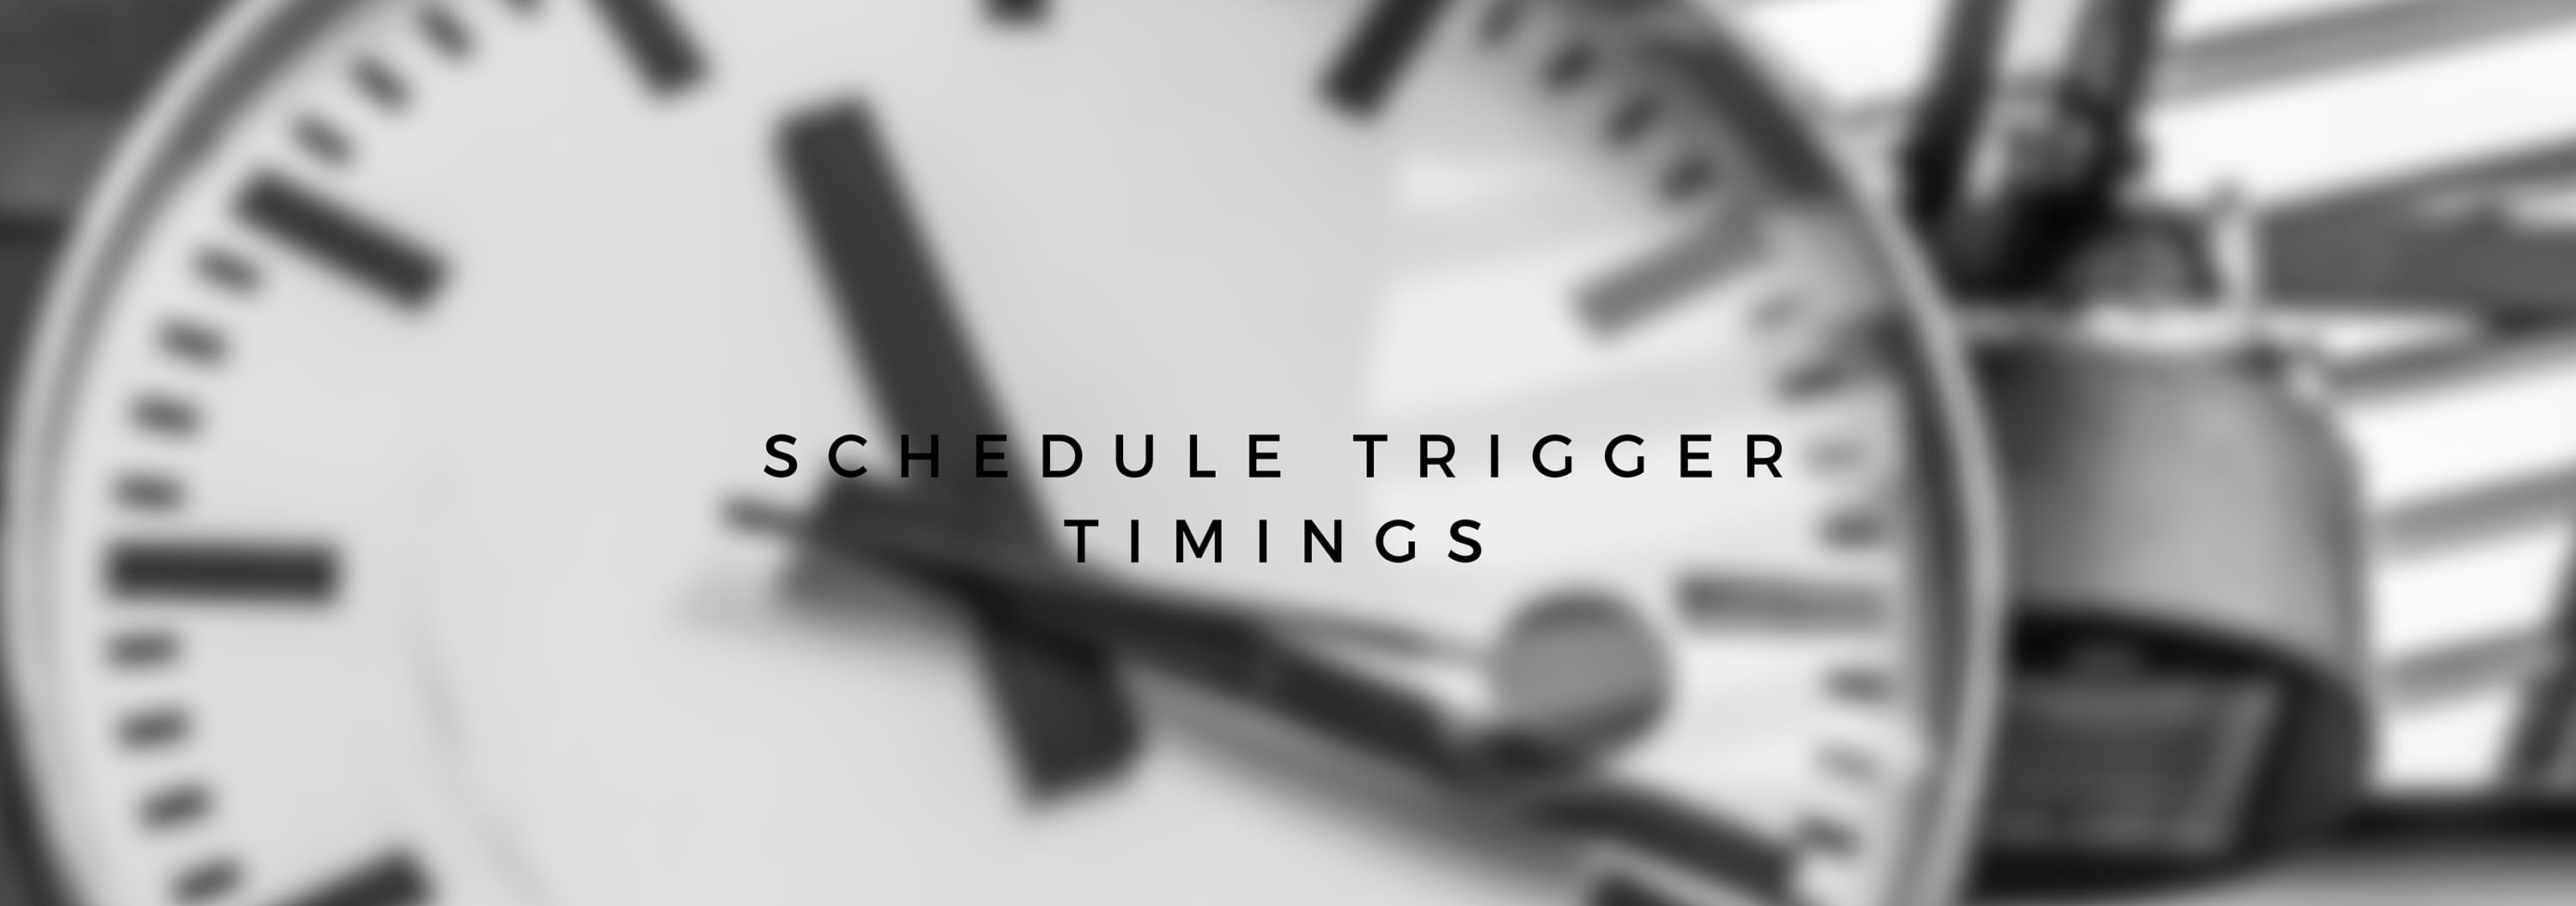 Schedule trigger timings